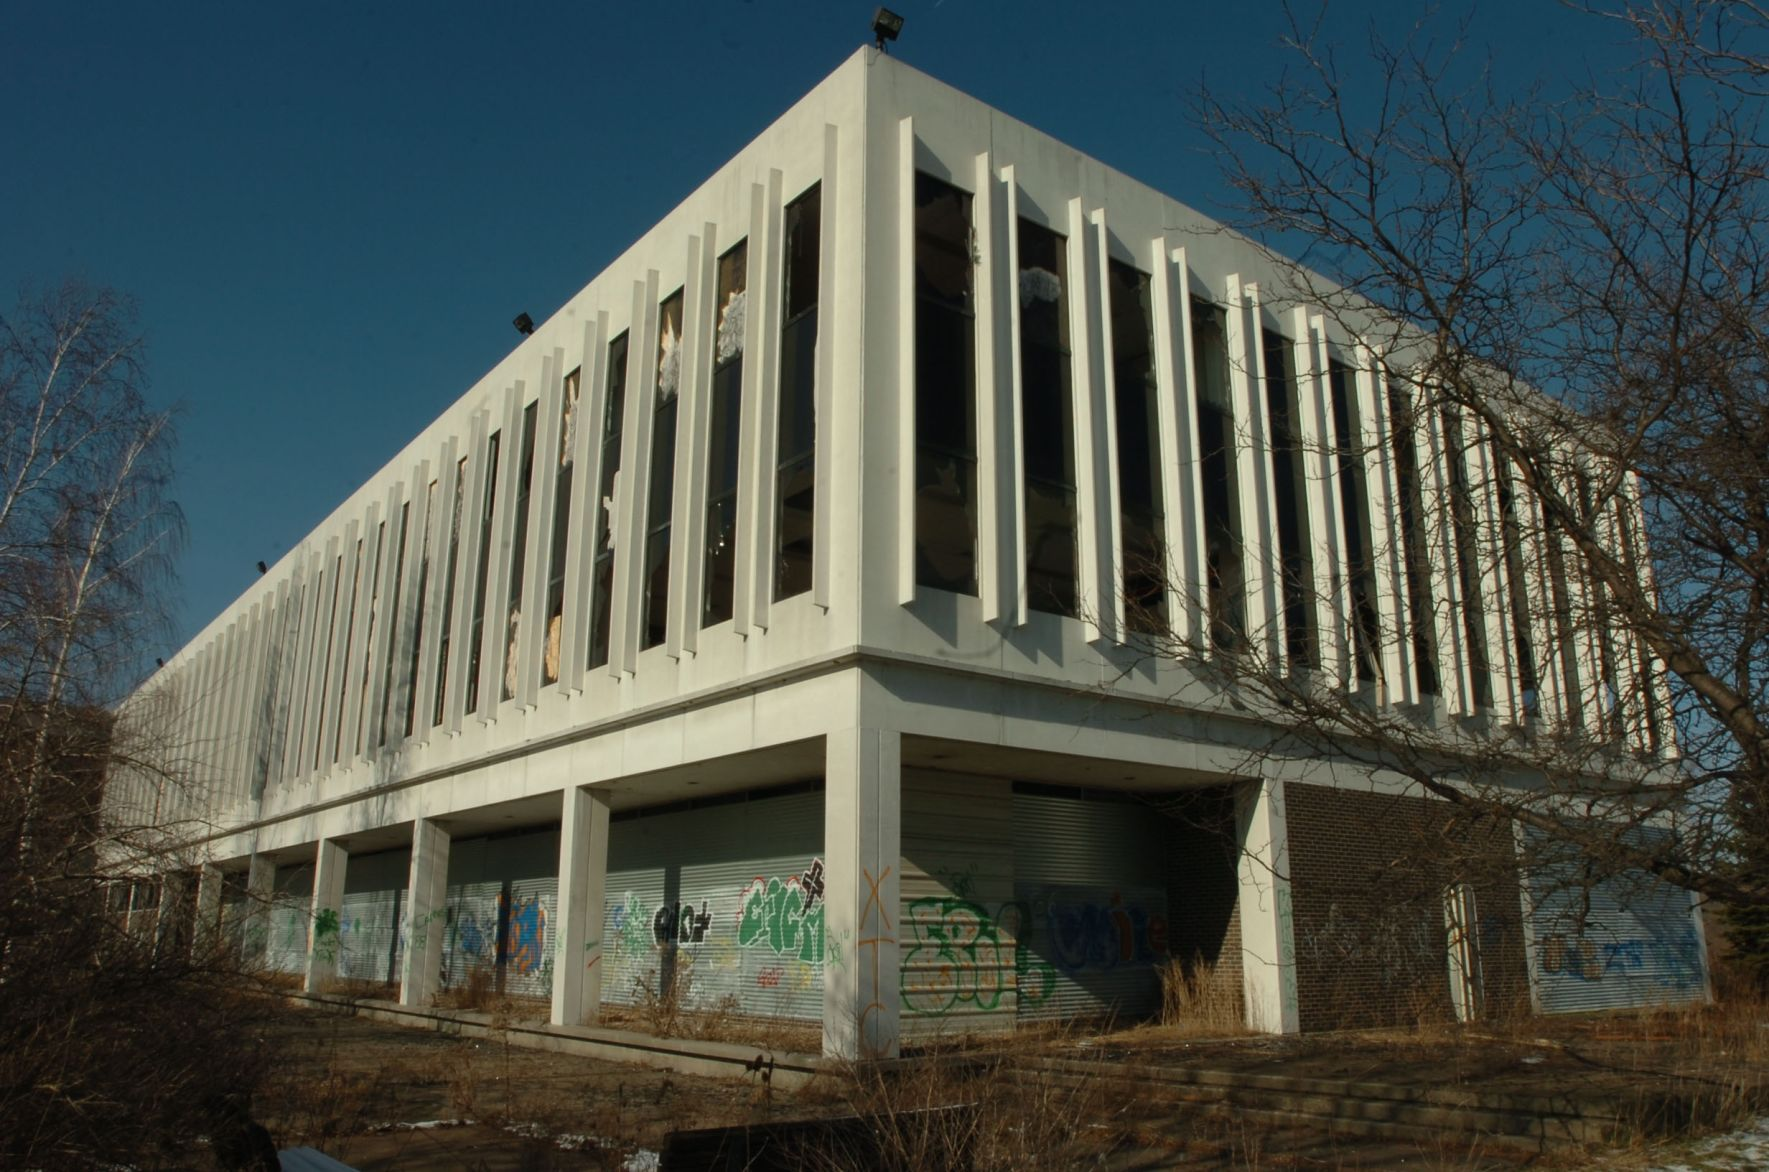 Abandoned Dunlop Offices On Grand Island Could Become Hotel Business Local Buffalonews Com